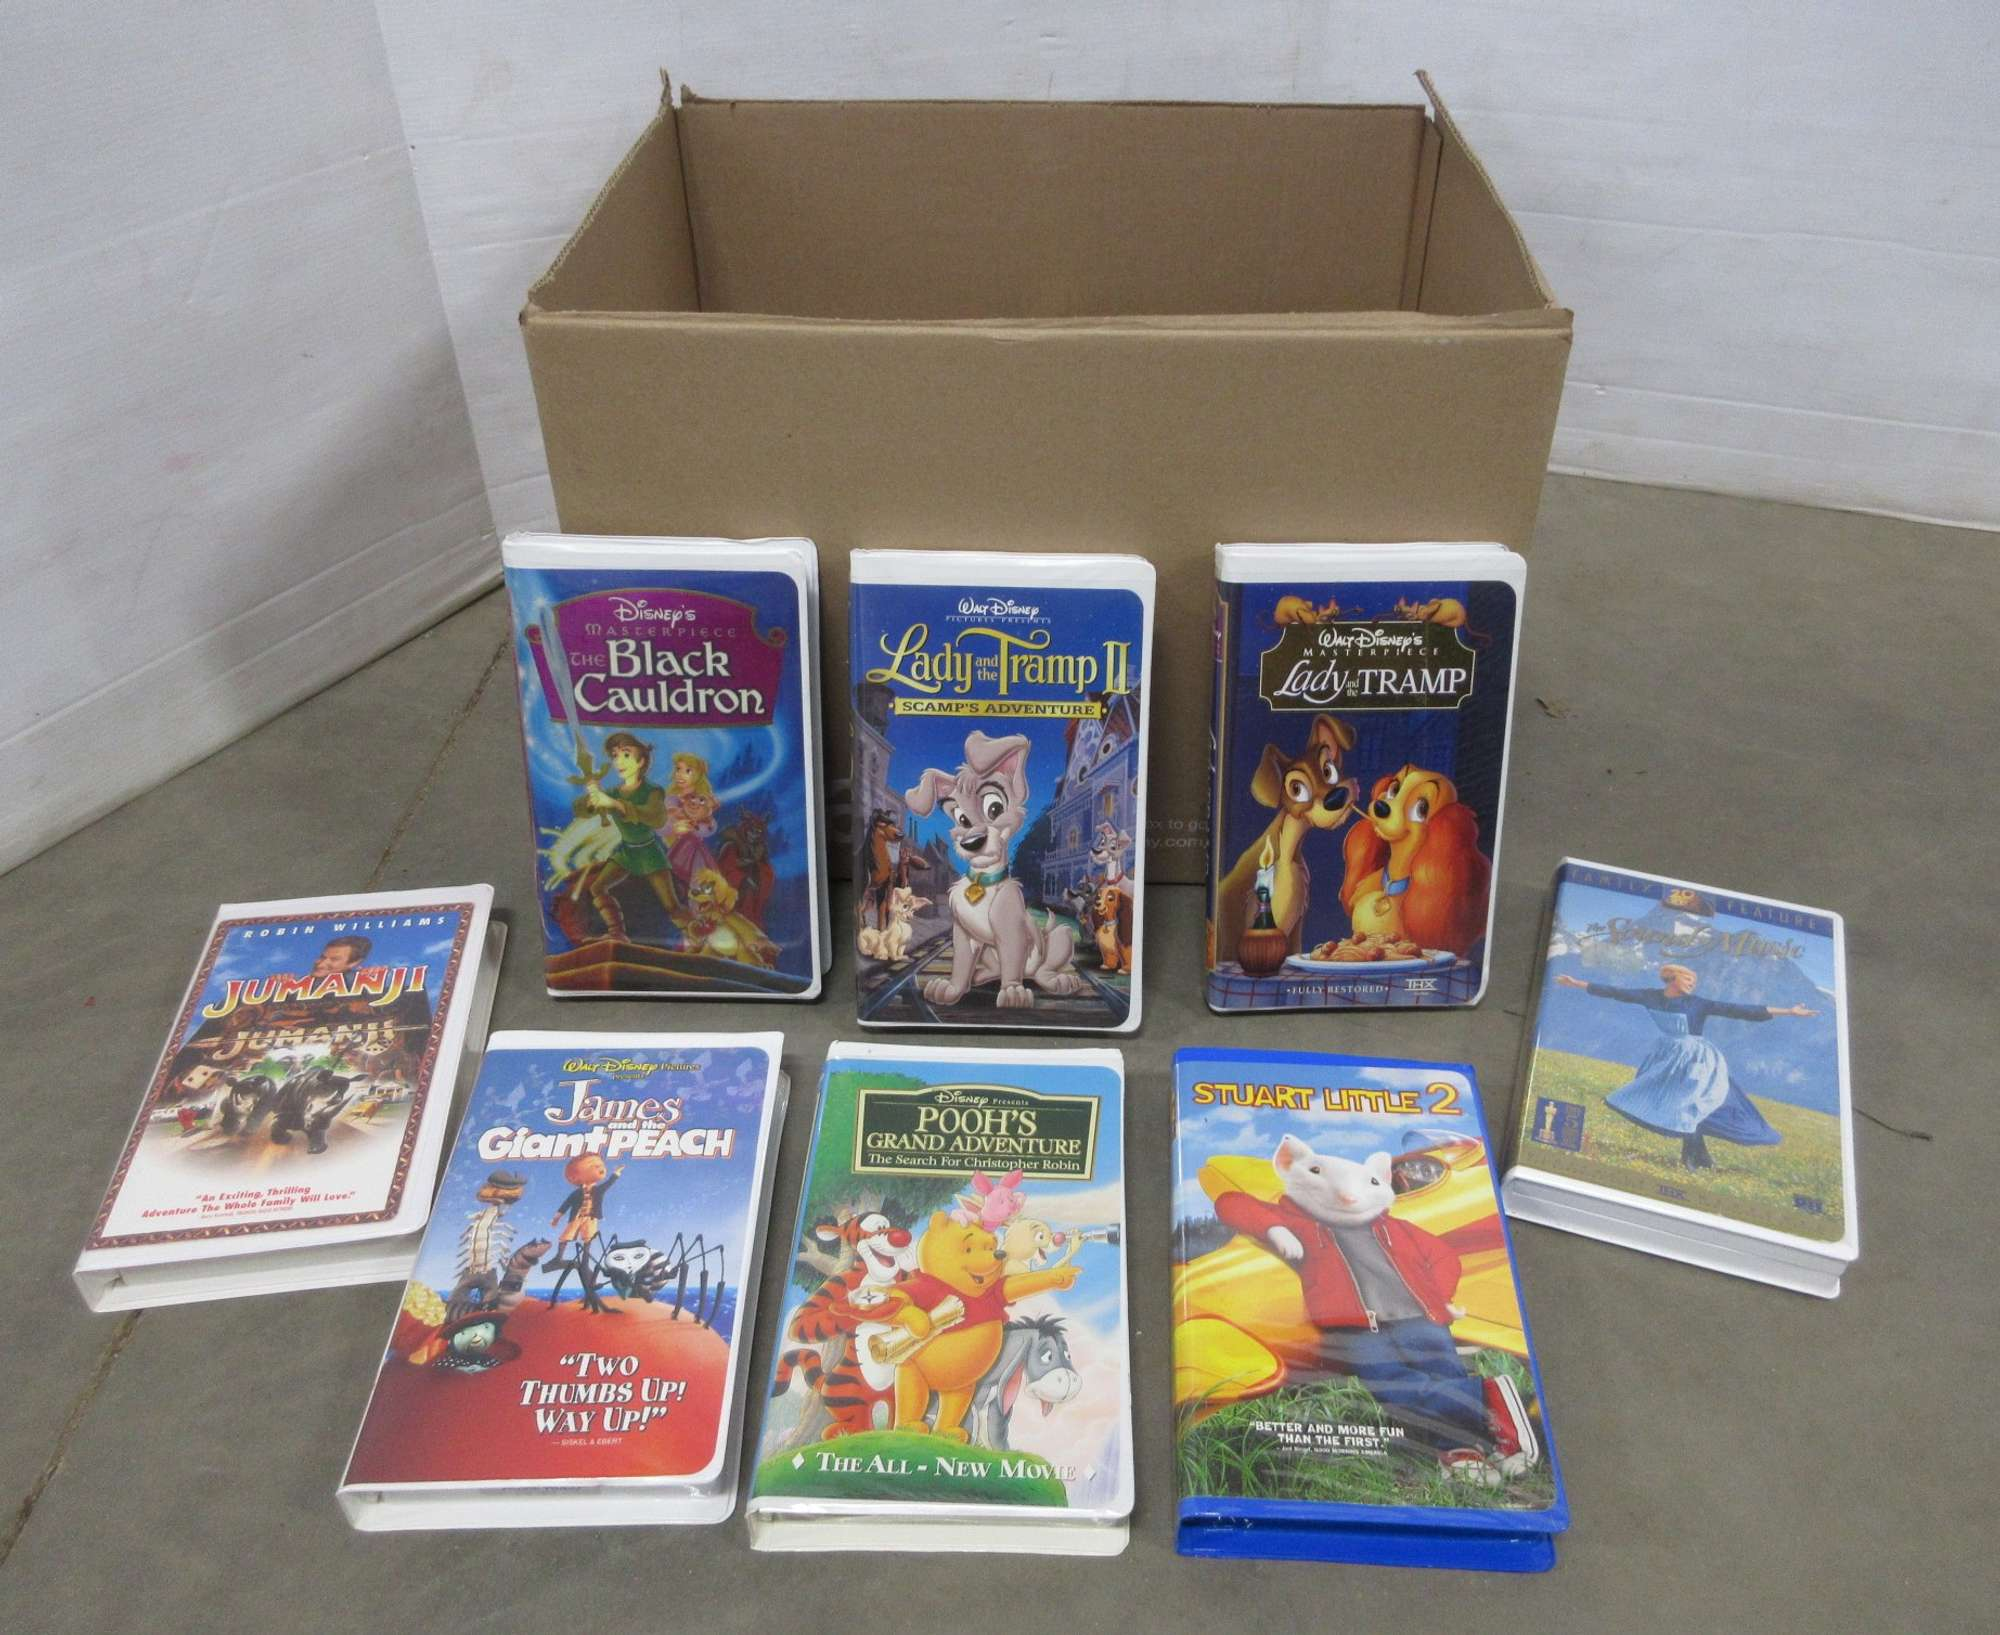 Albrecht Auctions 27 Cartoon Vhs Tapes Include Peter Pan Lady The Tramp I And Ii 101 Dalmatians 102 Dalmatians Snow White Lion King Dinosaurs Pocahontas Ii Stuart Little I And Ii And More